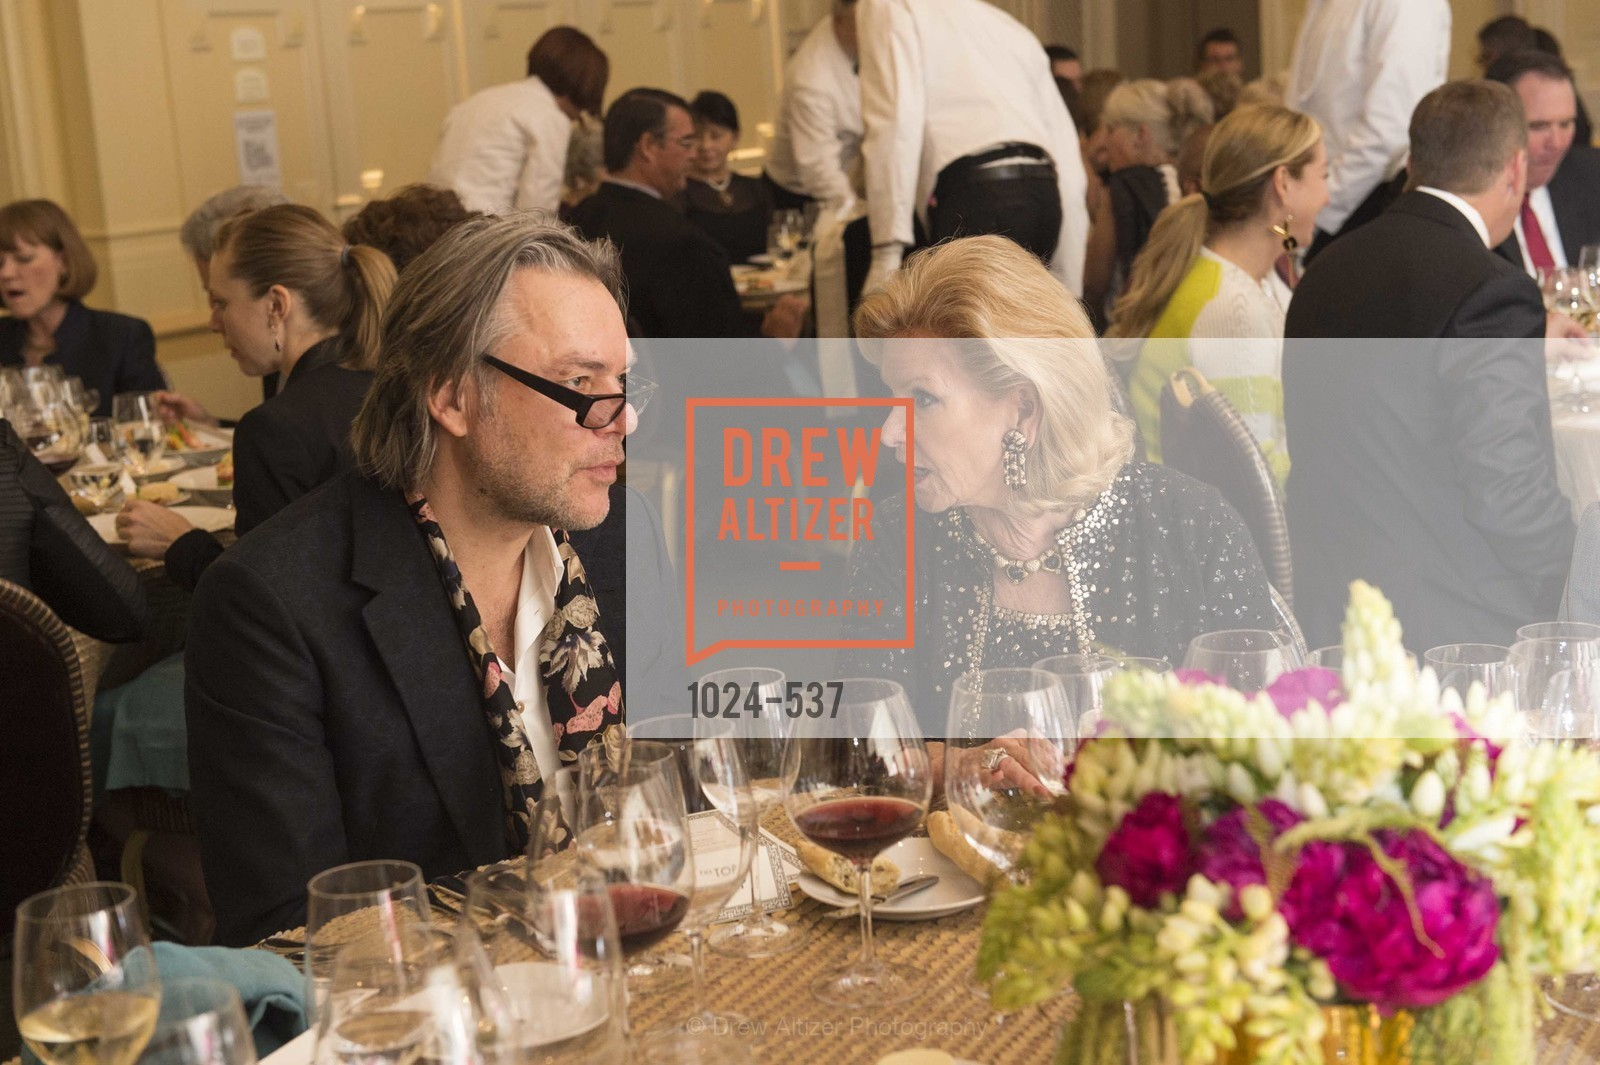 David Downton, Dede Wilsey, TOP OF THE MARK'S 75TH Anniversary Party, US, November 6th, 2014,Drew Altizer, Drew Altizer Photography, full-service agency, private events, San Francisco photographer, photographer california